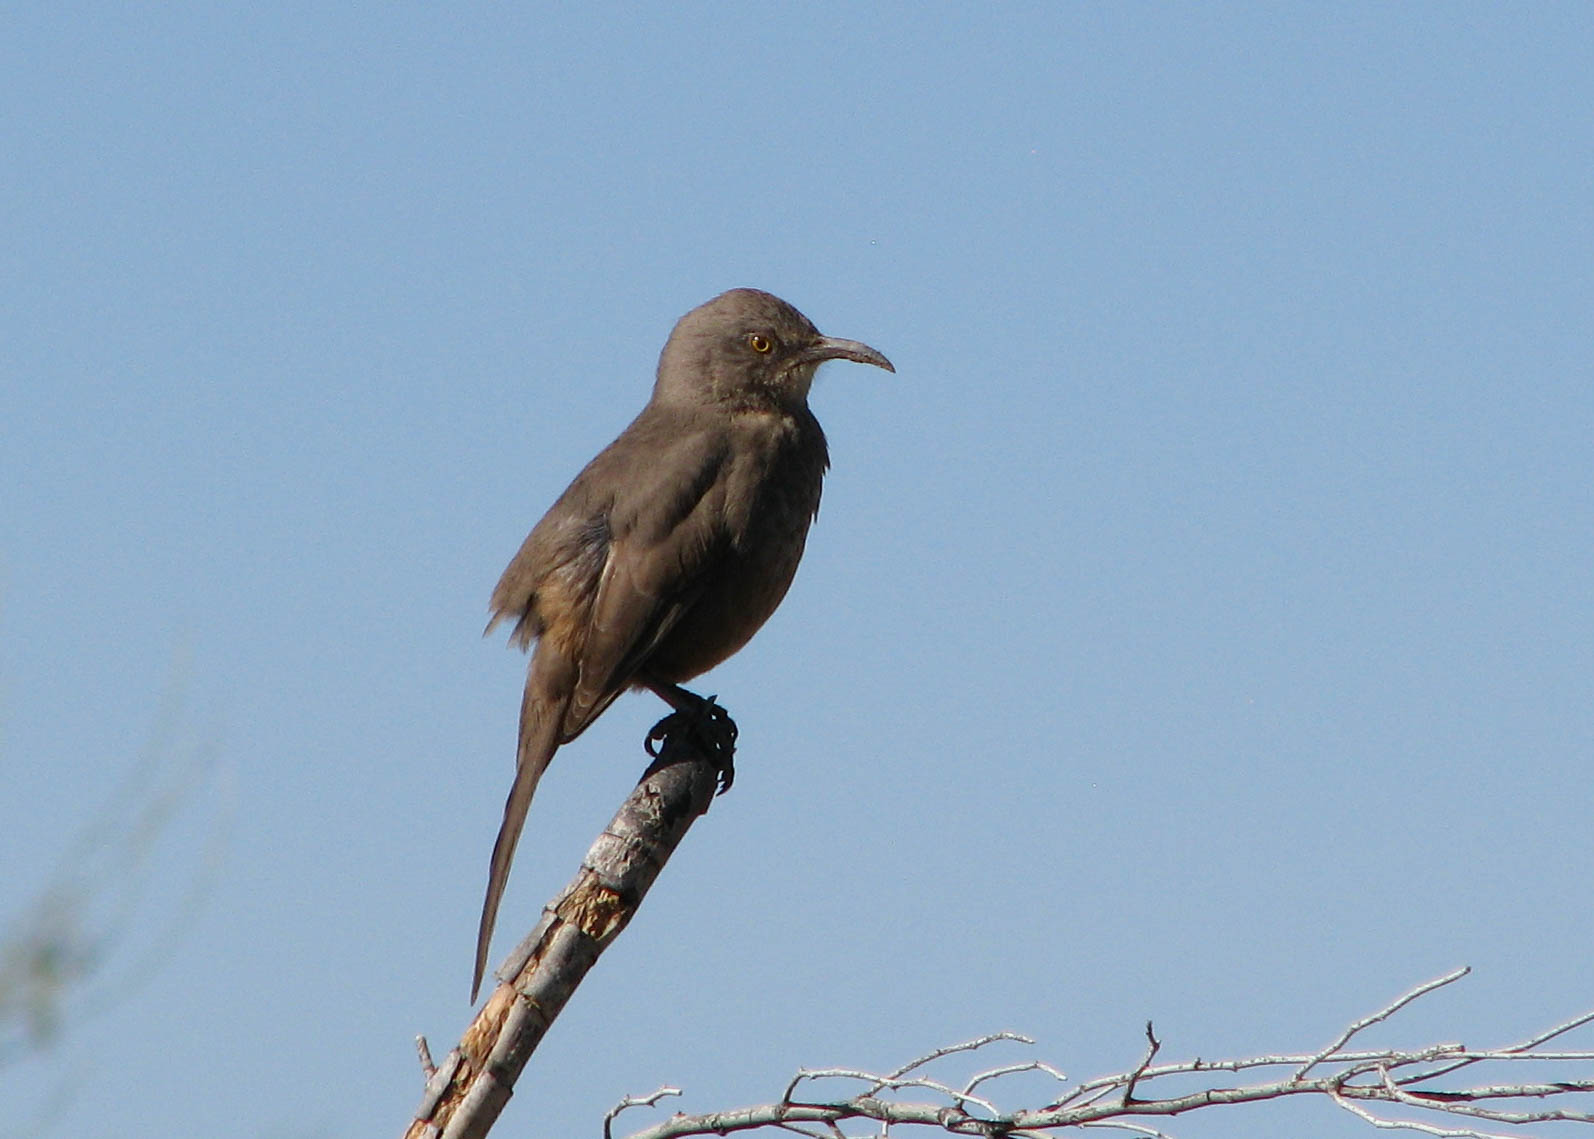 Curve-billed thrasher on bare branch sticking up; blue sky in background.